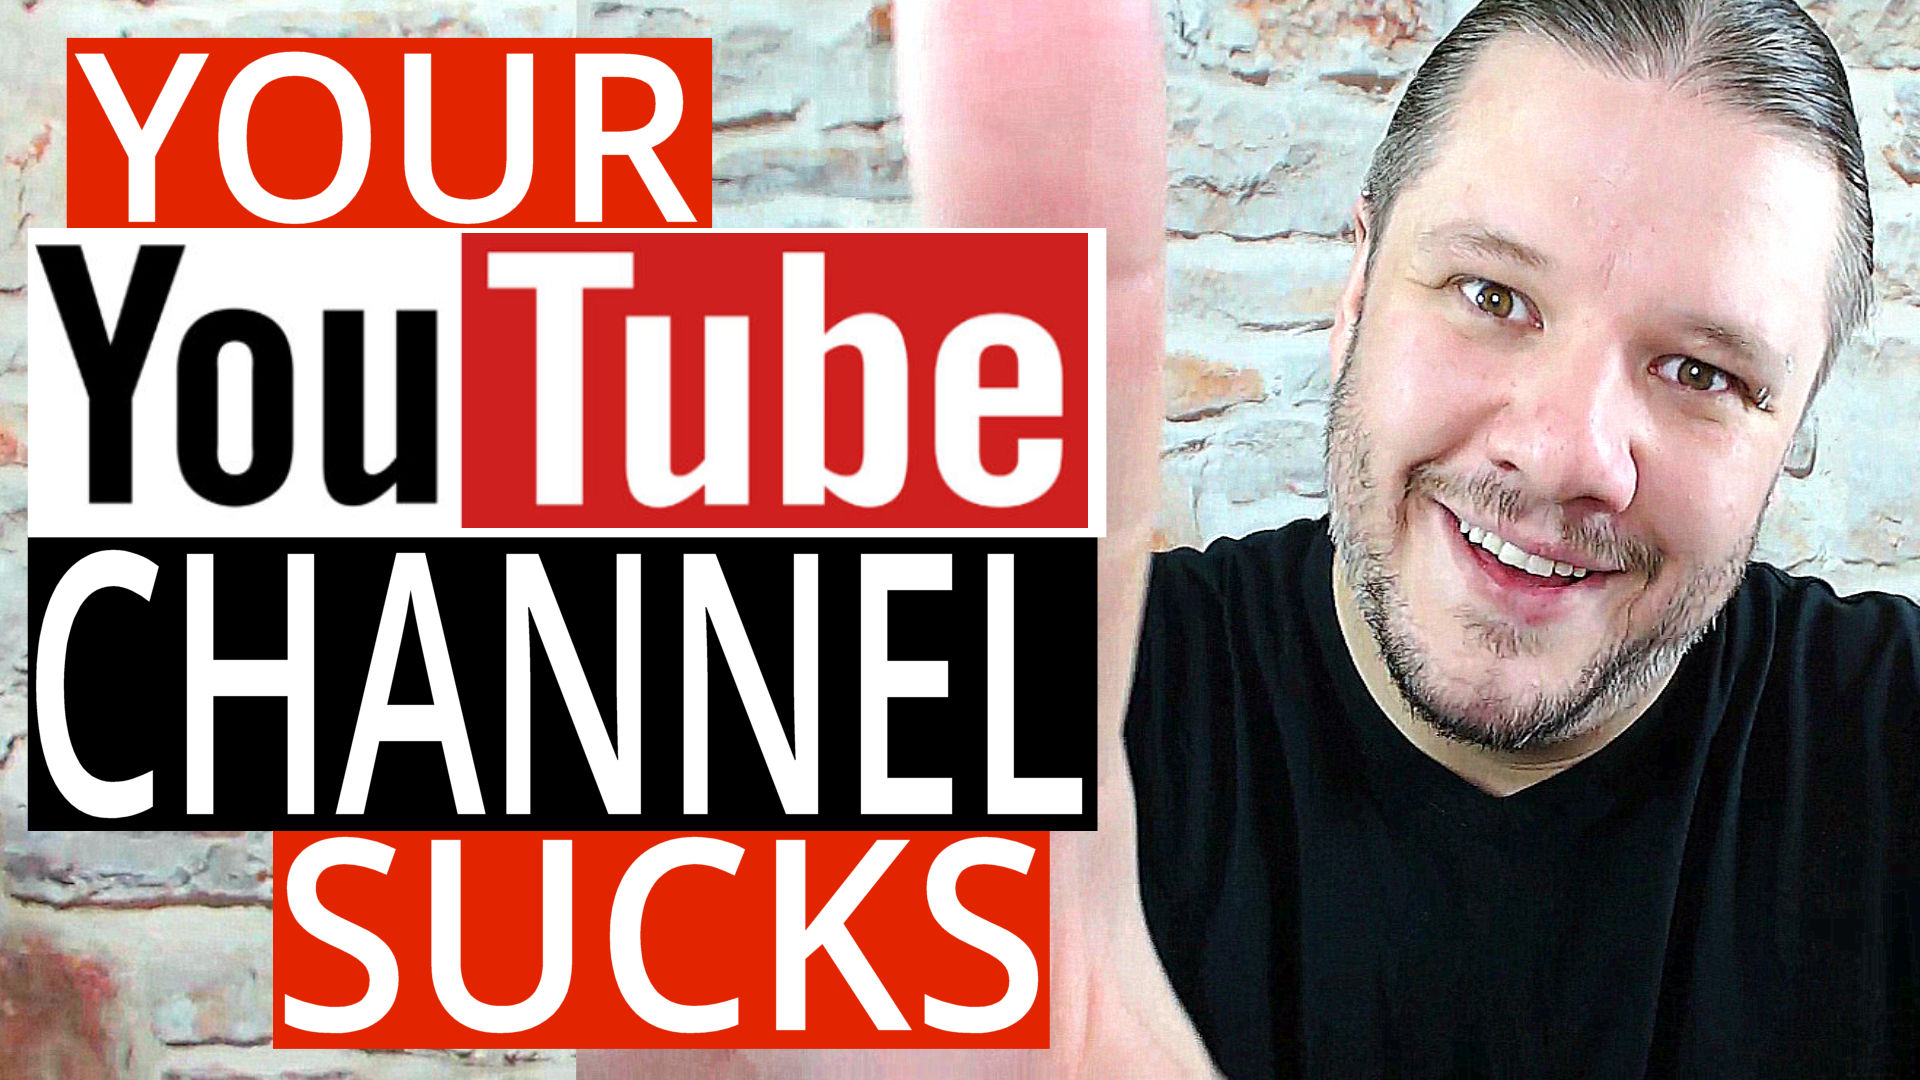 youtube tips,youtube tricks,youtube tips 2018,your youtube channel sucks,6 Reasons Why YOUR YouTube Channel SUCKS,6 Reasons YOUR YouTube Channel SUCKS,your channel sucks,youtube tips to grow your channel 2018,youtube seo tips 2018,youtube advice,youtube tricks 2018,youtube tips and tricks,youtube tips for small channels,how to grow your youtube channel,youtube advice for beginners,youtube advice 2018,youtube advice and tips,youtube advice for small channels